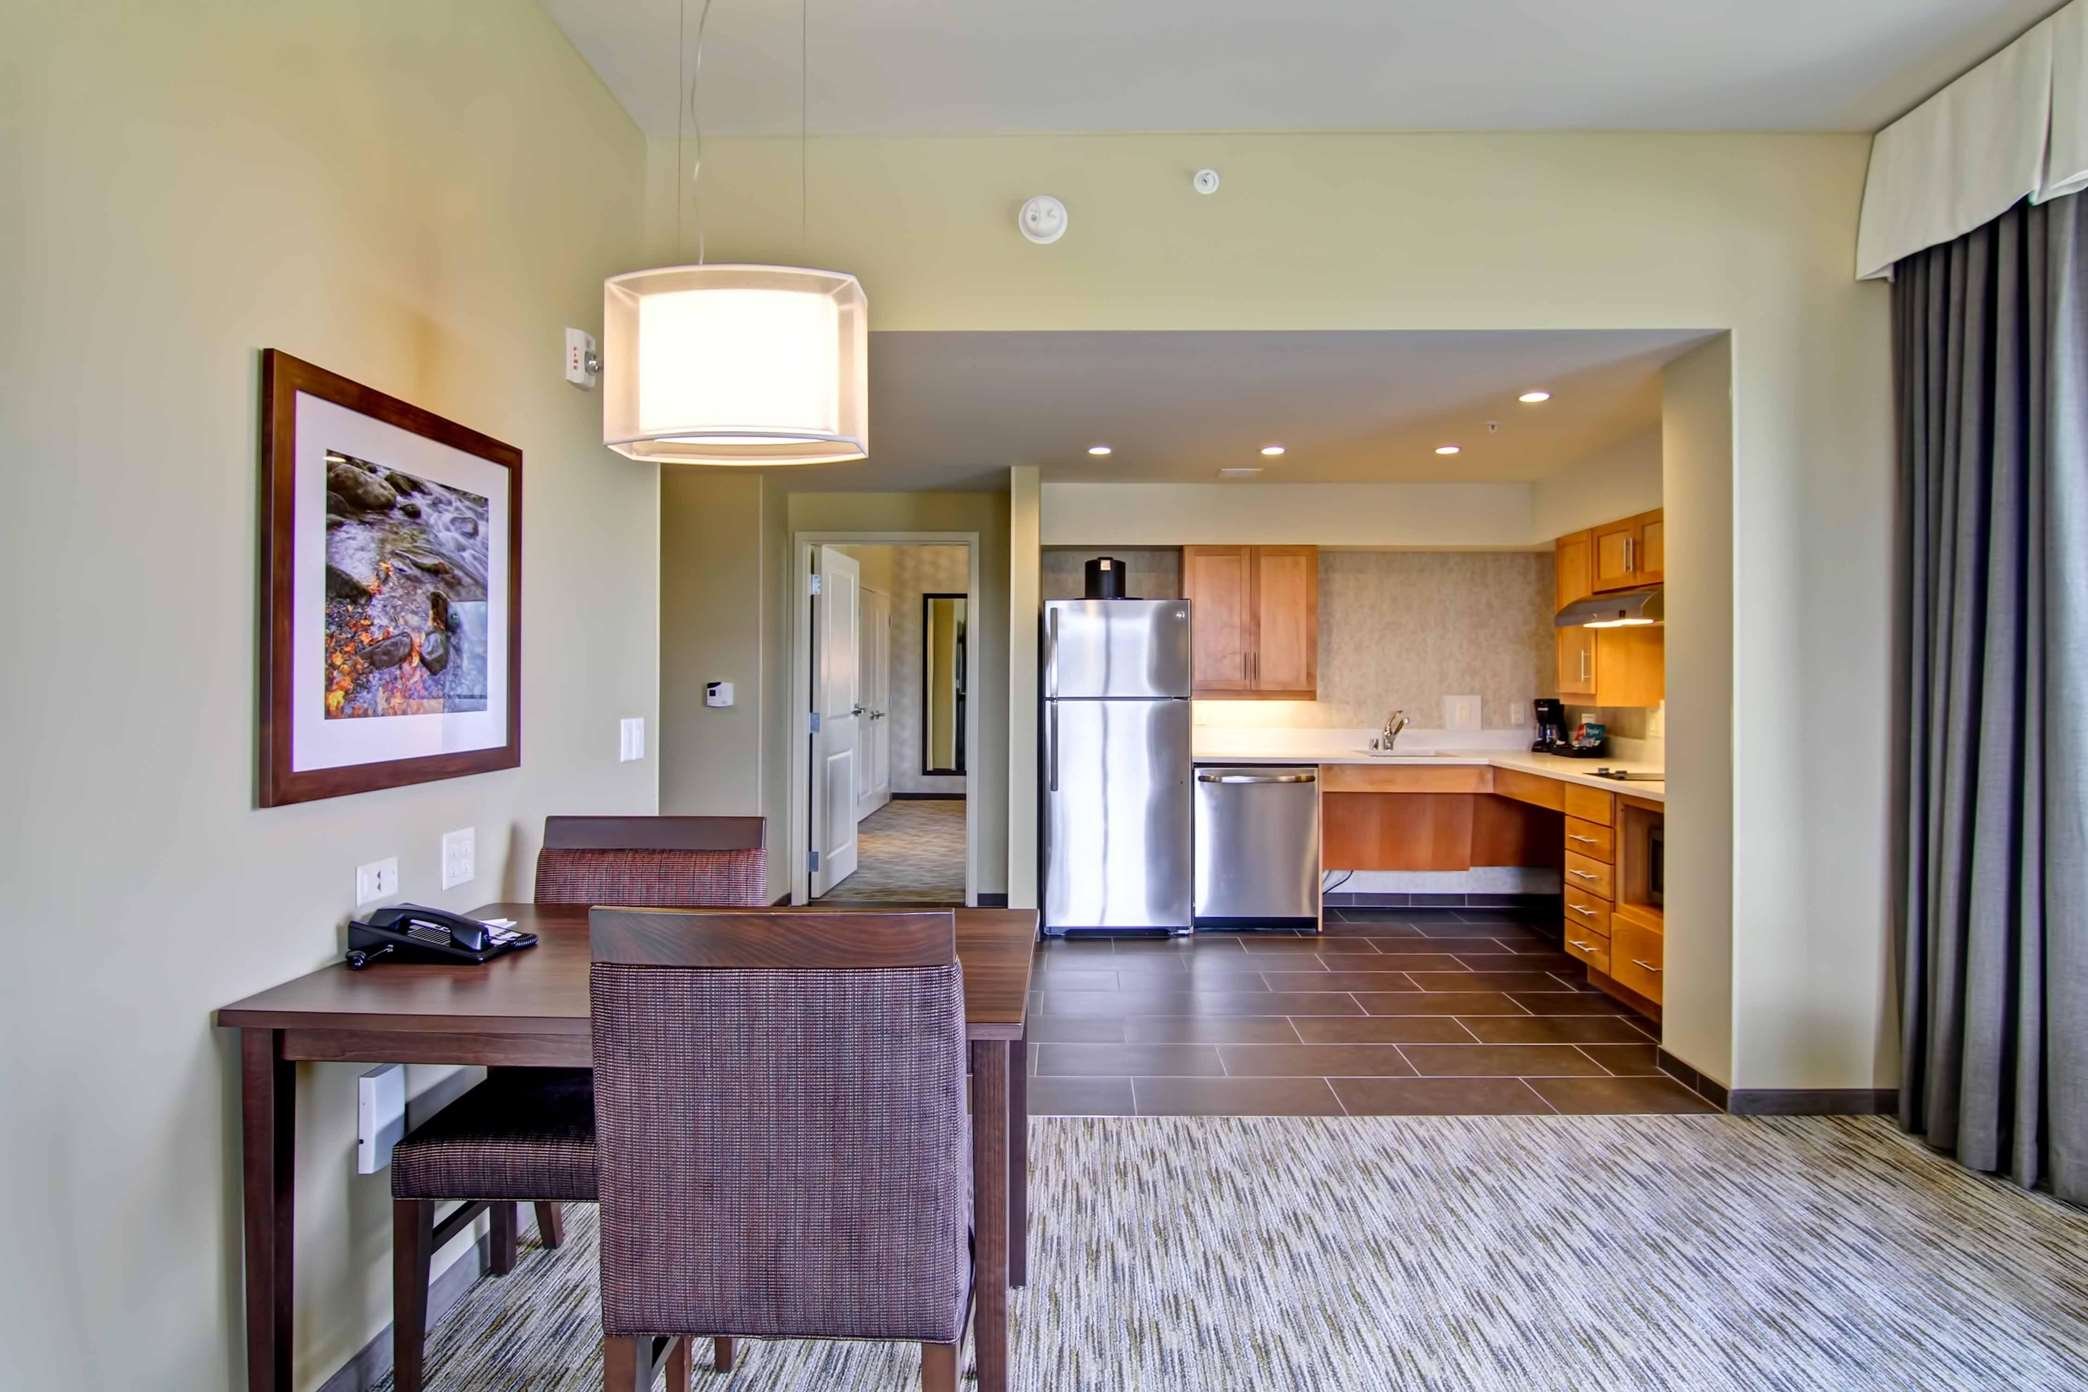 Homewood Suites by Hilton Seattle-Issaquah image 23